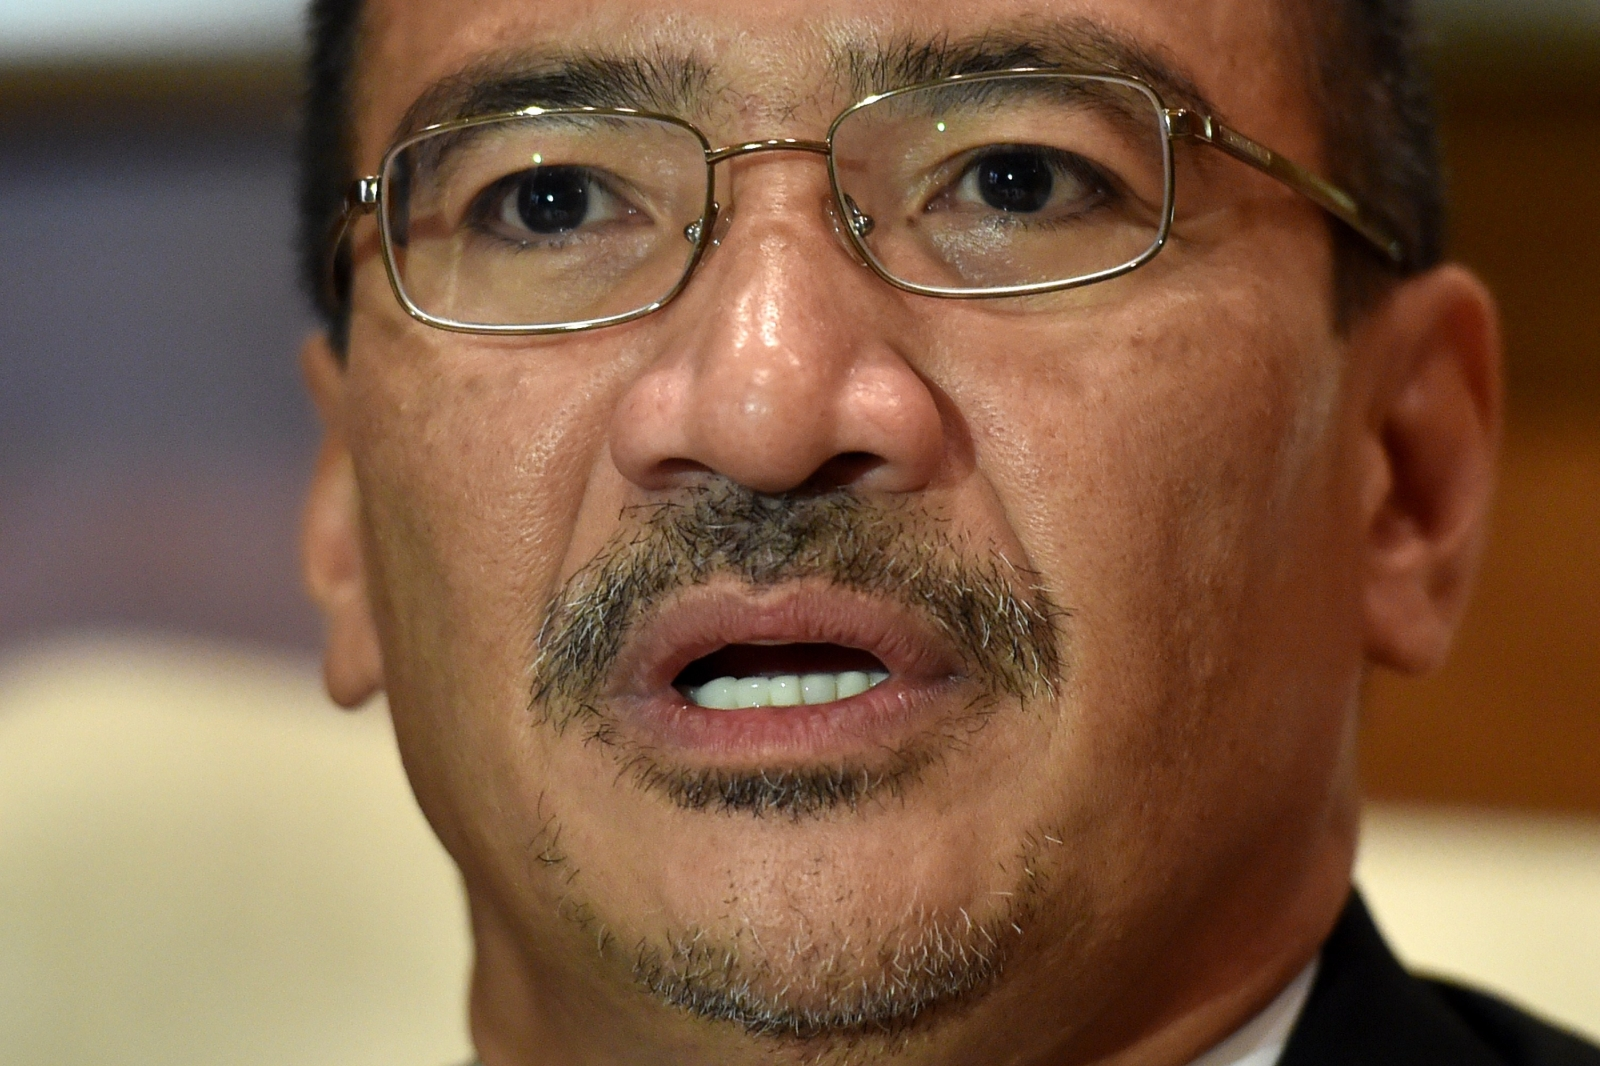 Hishammuddin Hussein almost certain MH370 shall be found, despite glaring lack of progress